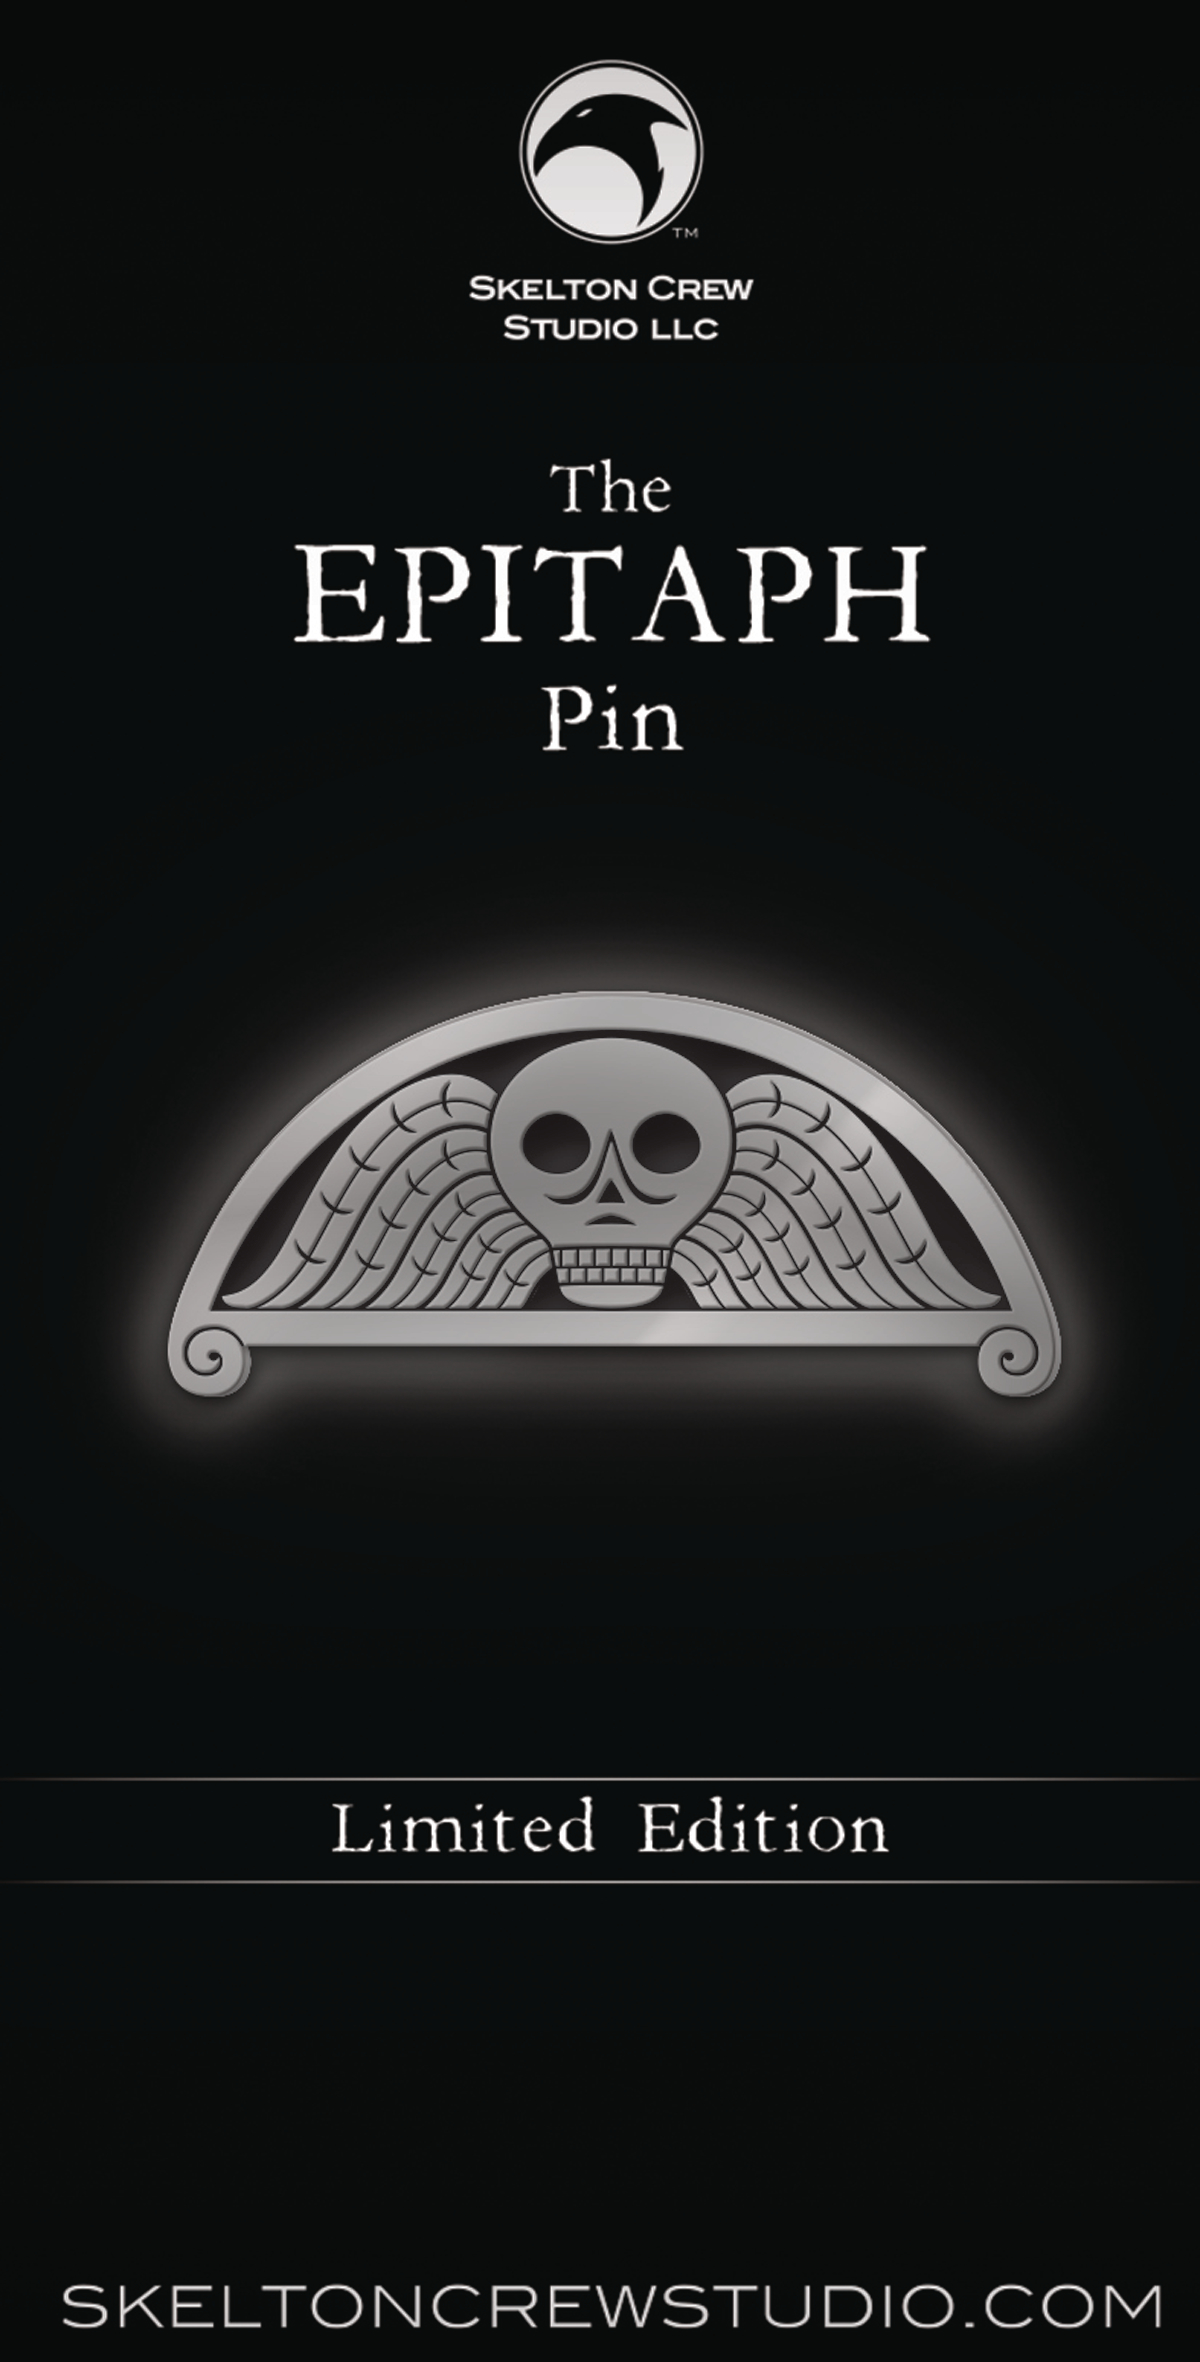 SKELTON CREW COLLECTION LIMITED EDITION EPITAPH PIN